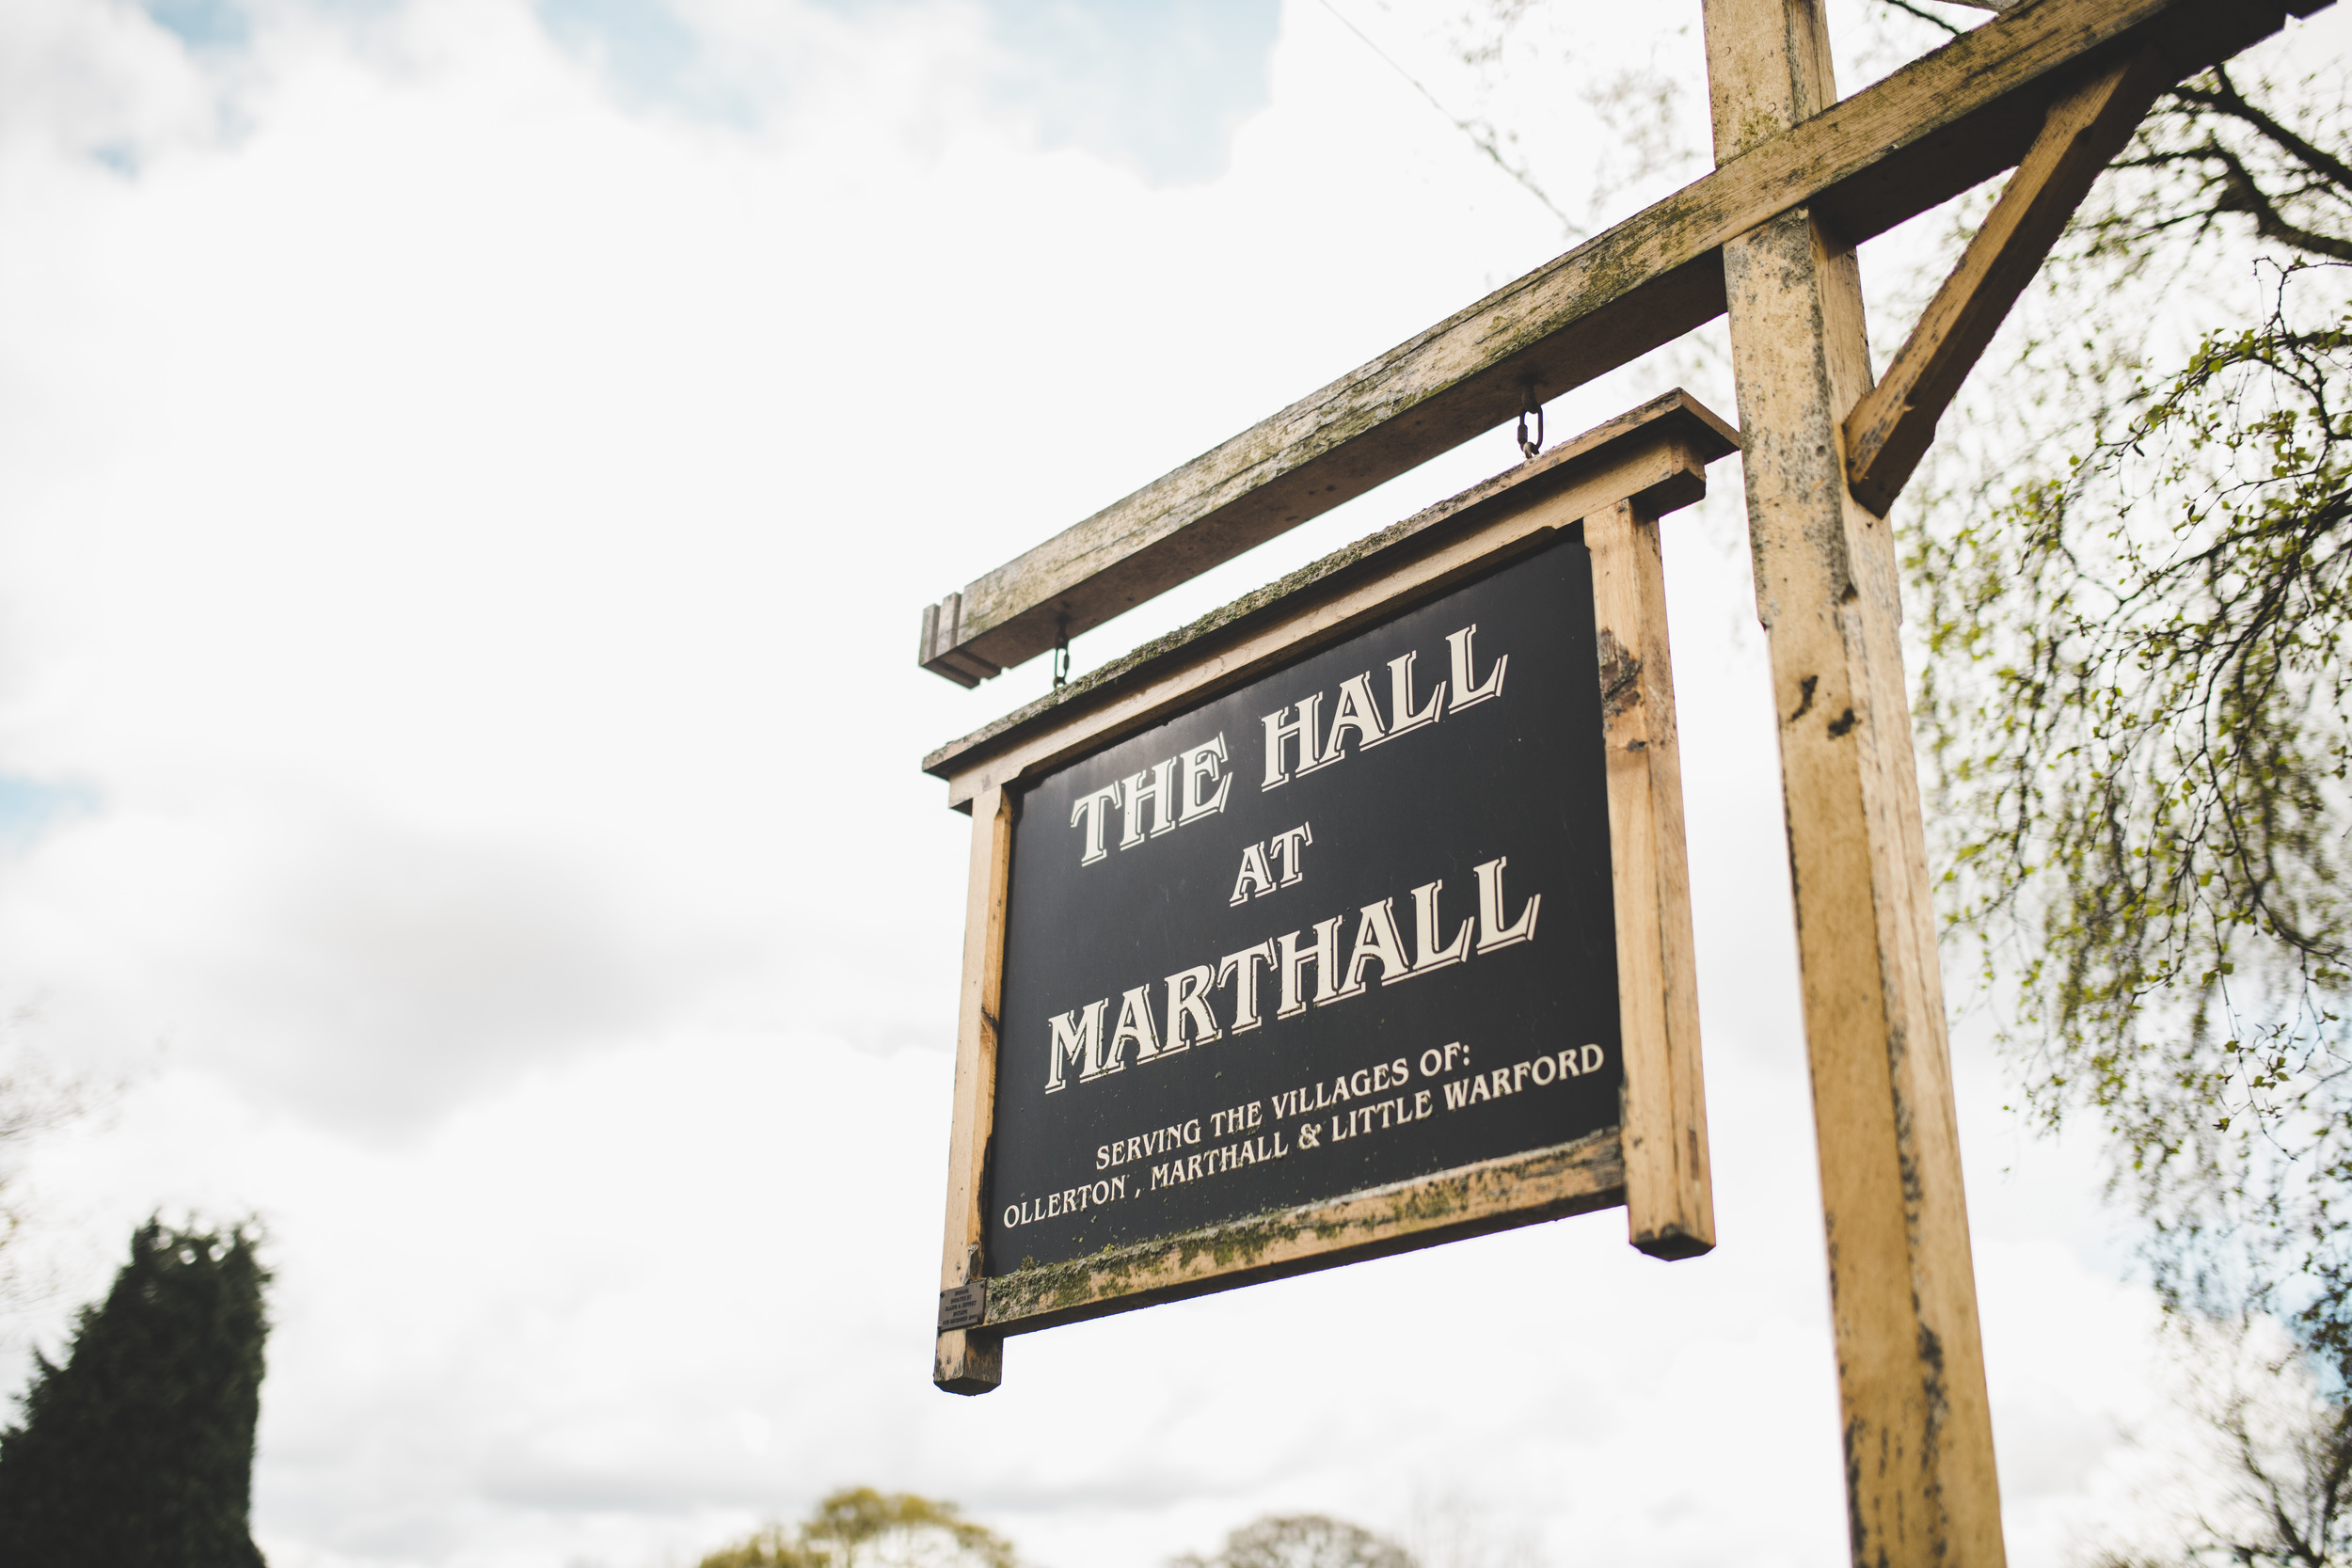 exterior - the hall at marthall